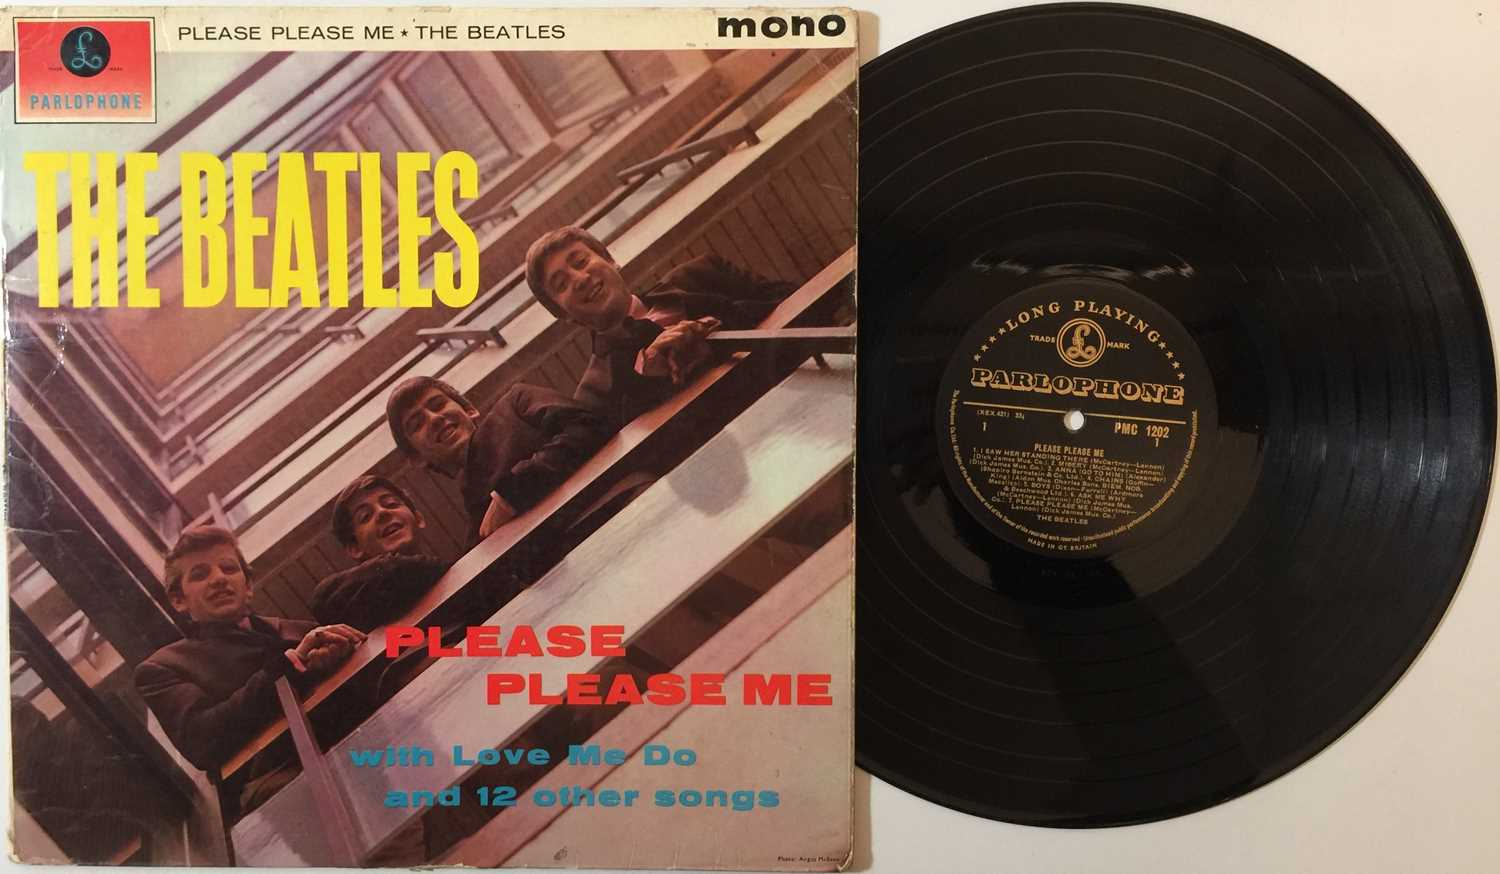 Lot 35 - THE BEATLES - PLEASE PLEASE ME (MONO 'BLACK AND GOLD' ORIGINAL PMC 1202 - SOLID EXAMPLE)